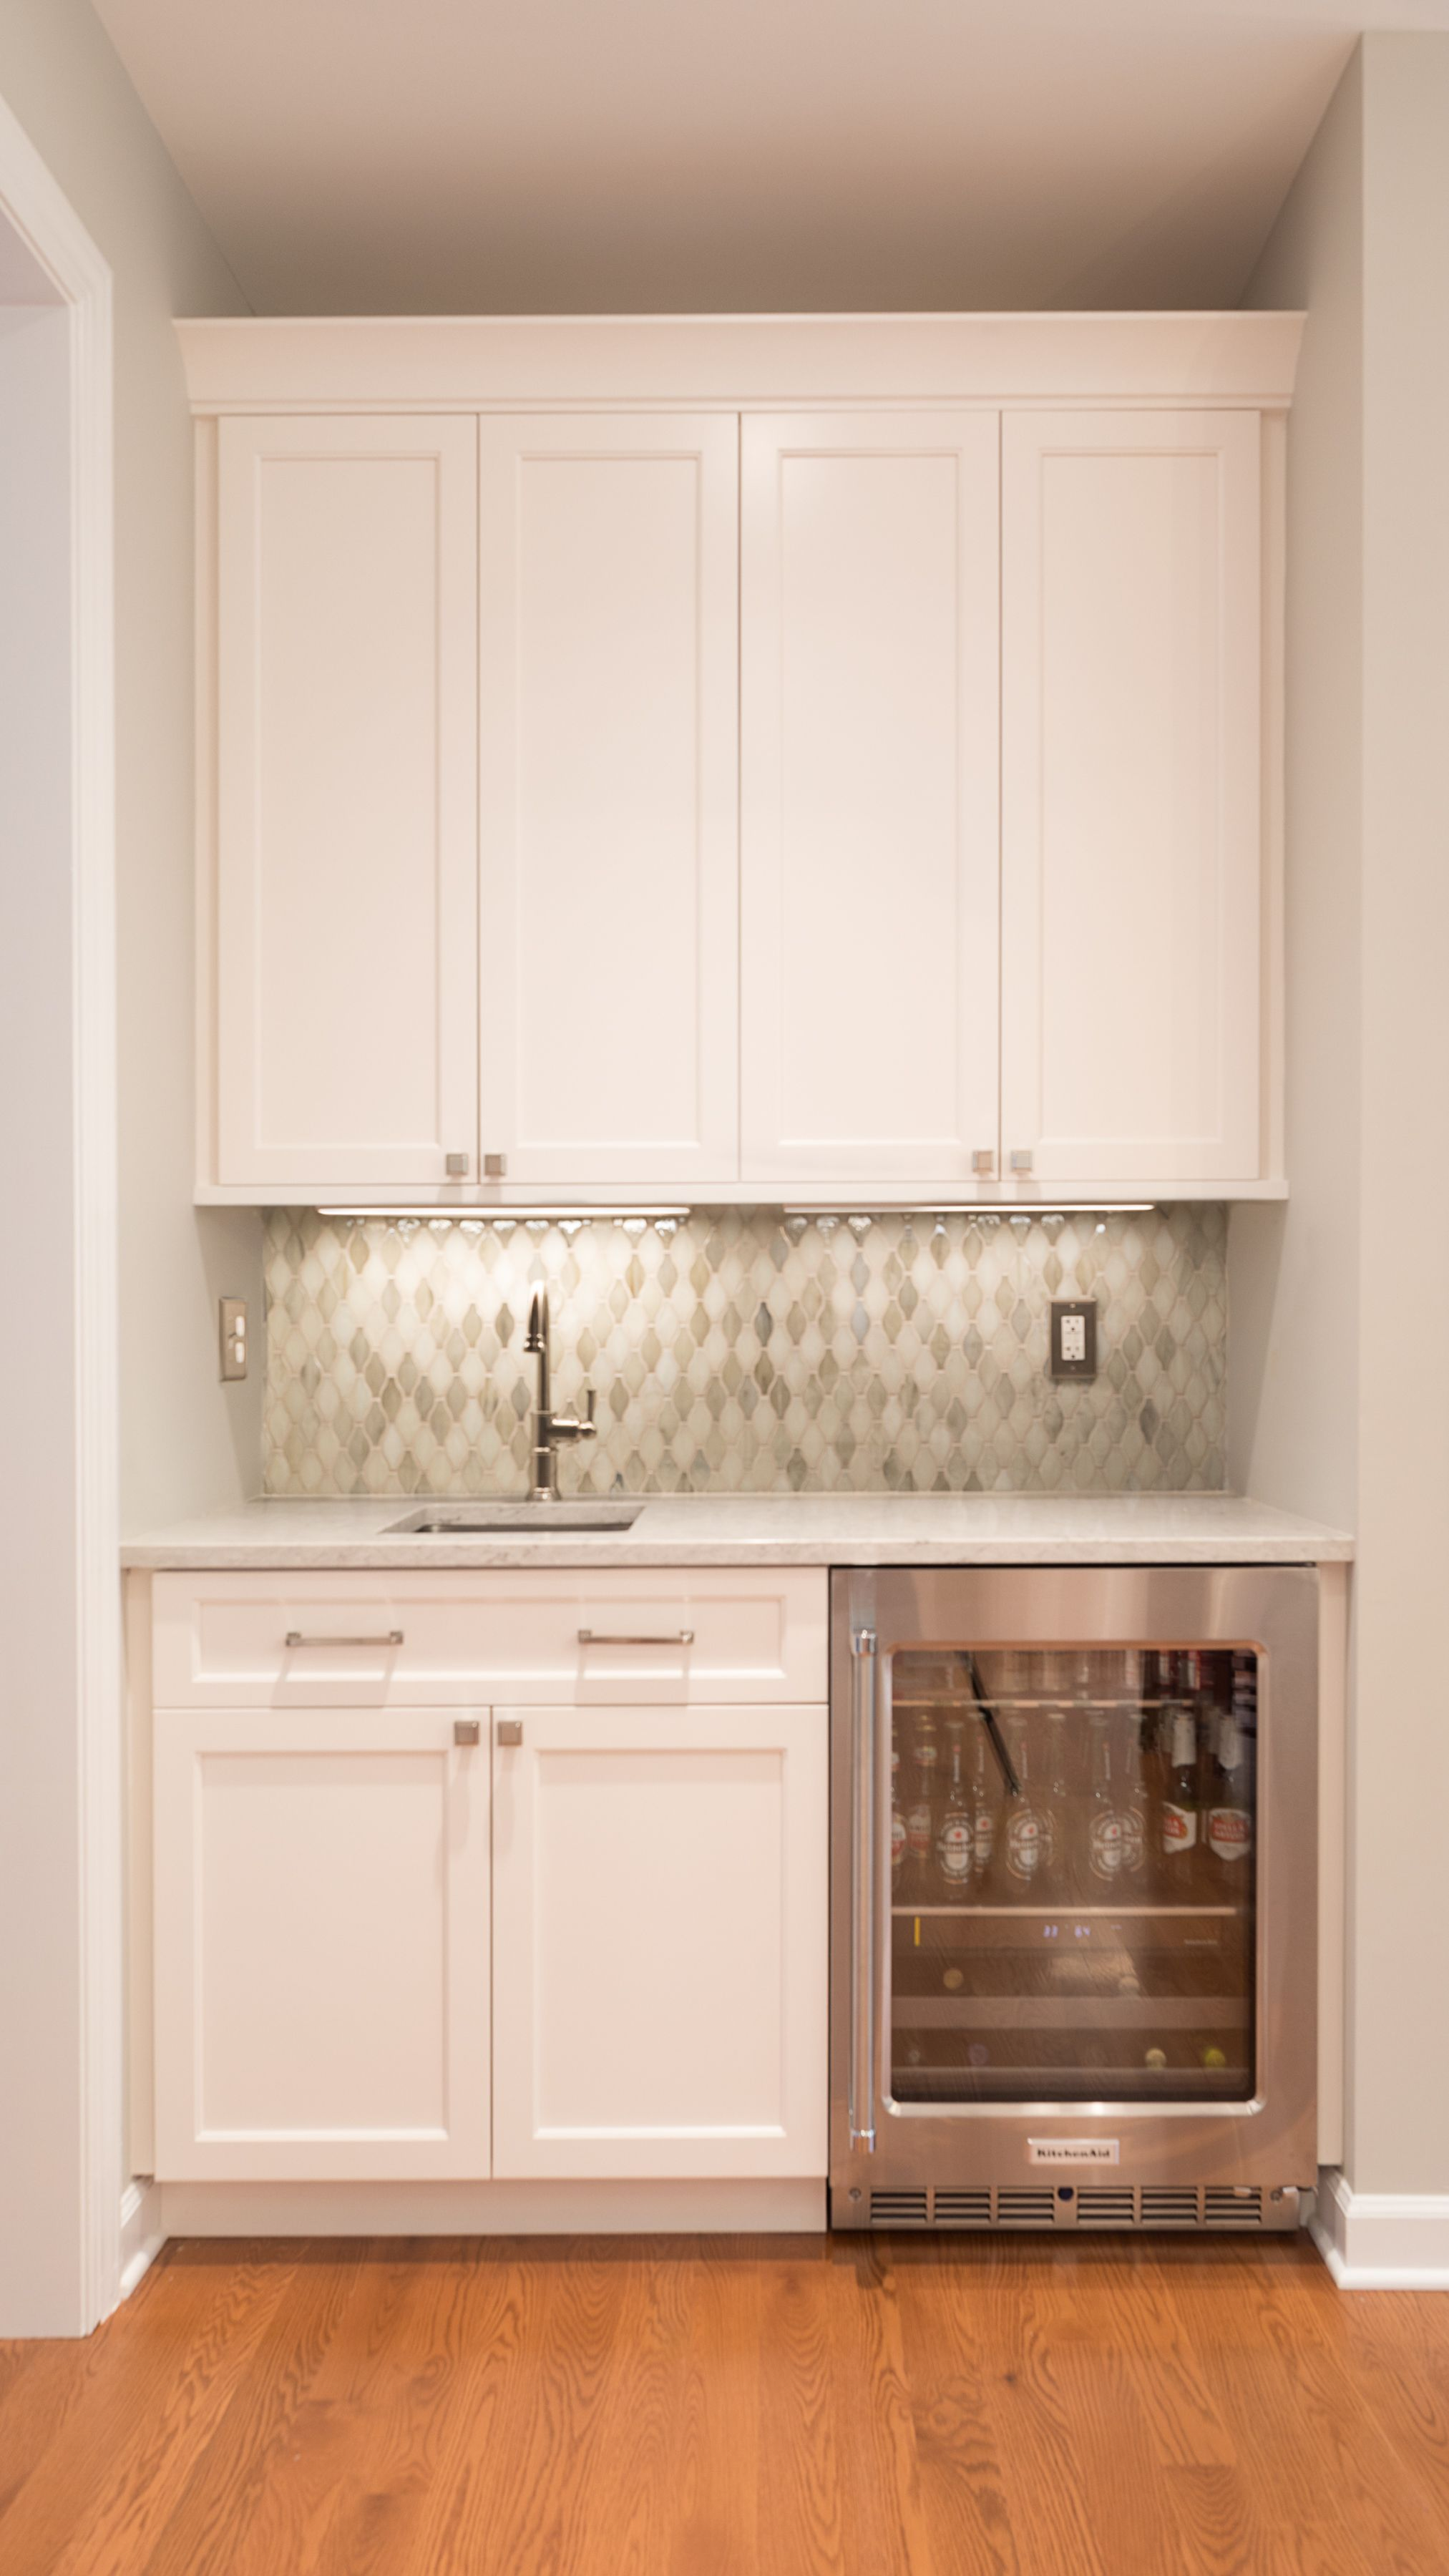 This Beautiful Wet Bar Definitely Amps Up The Style Factor Clean Lined Soft White Shaker Cabinets Kitchen Remodel Coffee Bars In Kitchen Basement Bar Designs